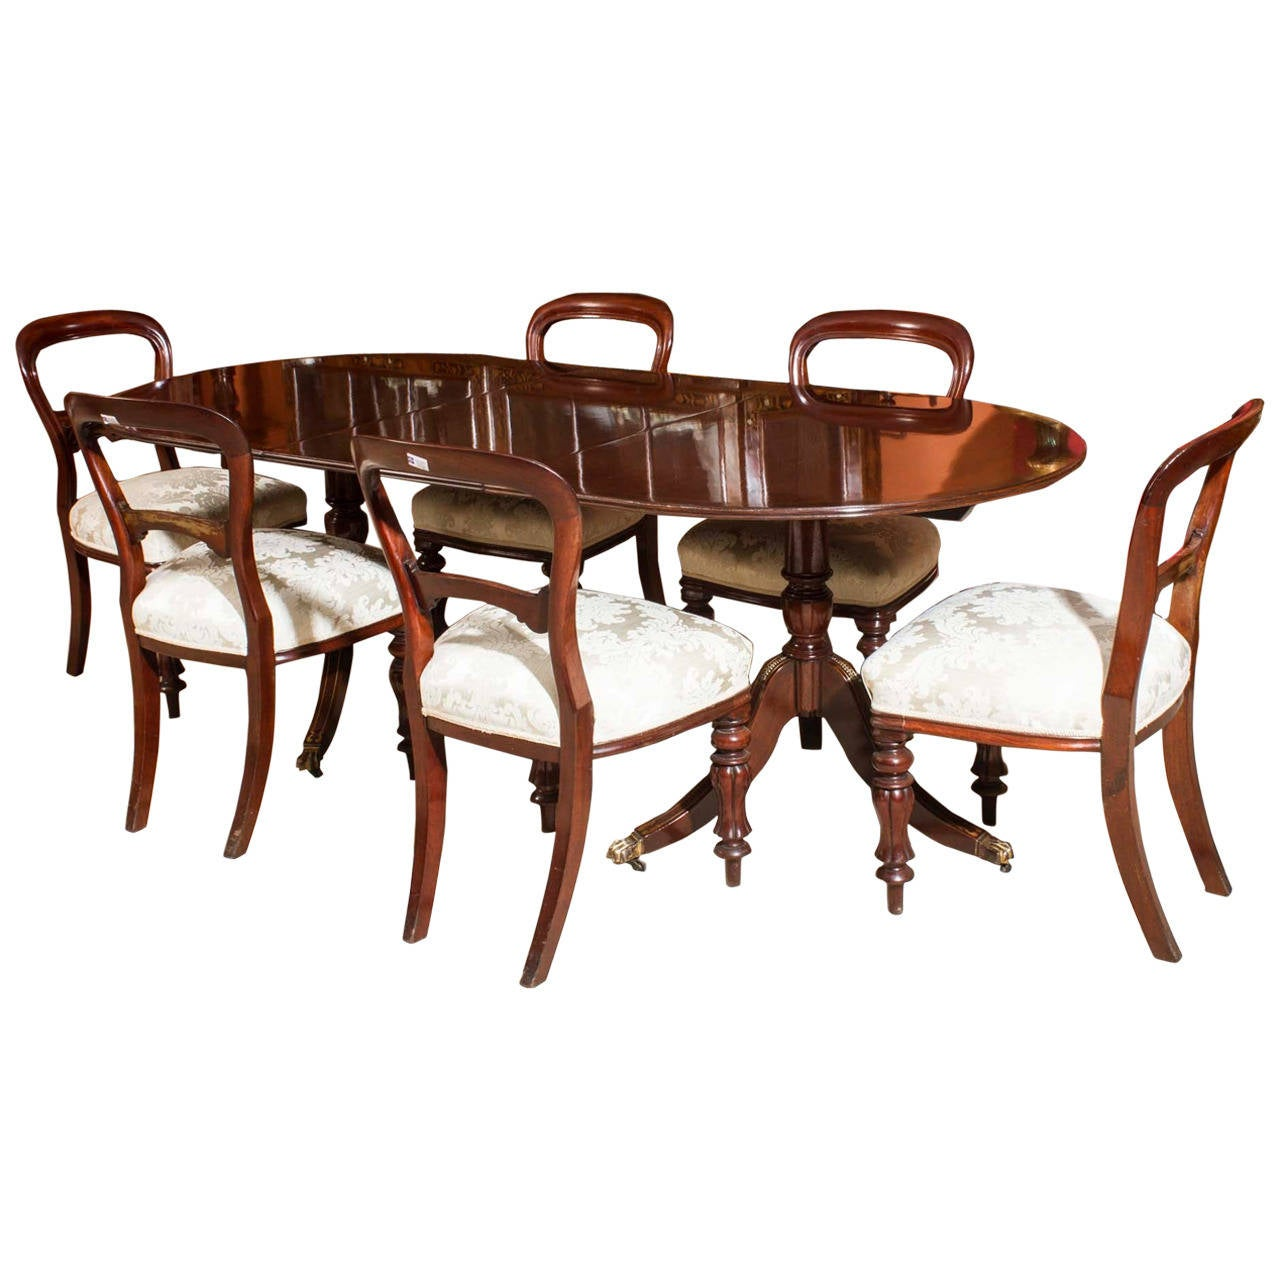 vintage regency style dining table and six antique chairs at 1stdibs. Black Bedroom Furniture Sets. Home Design Ideas